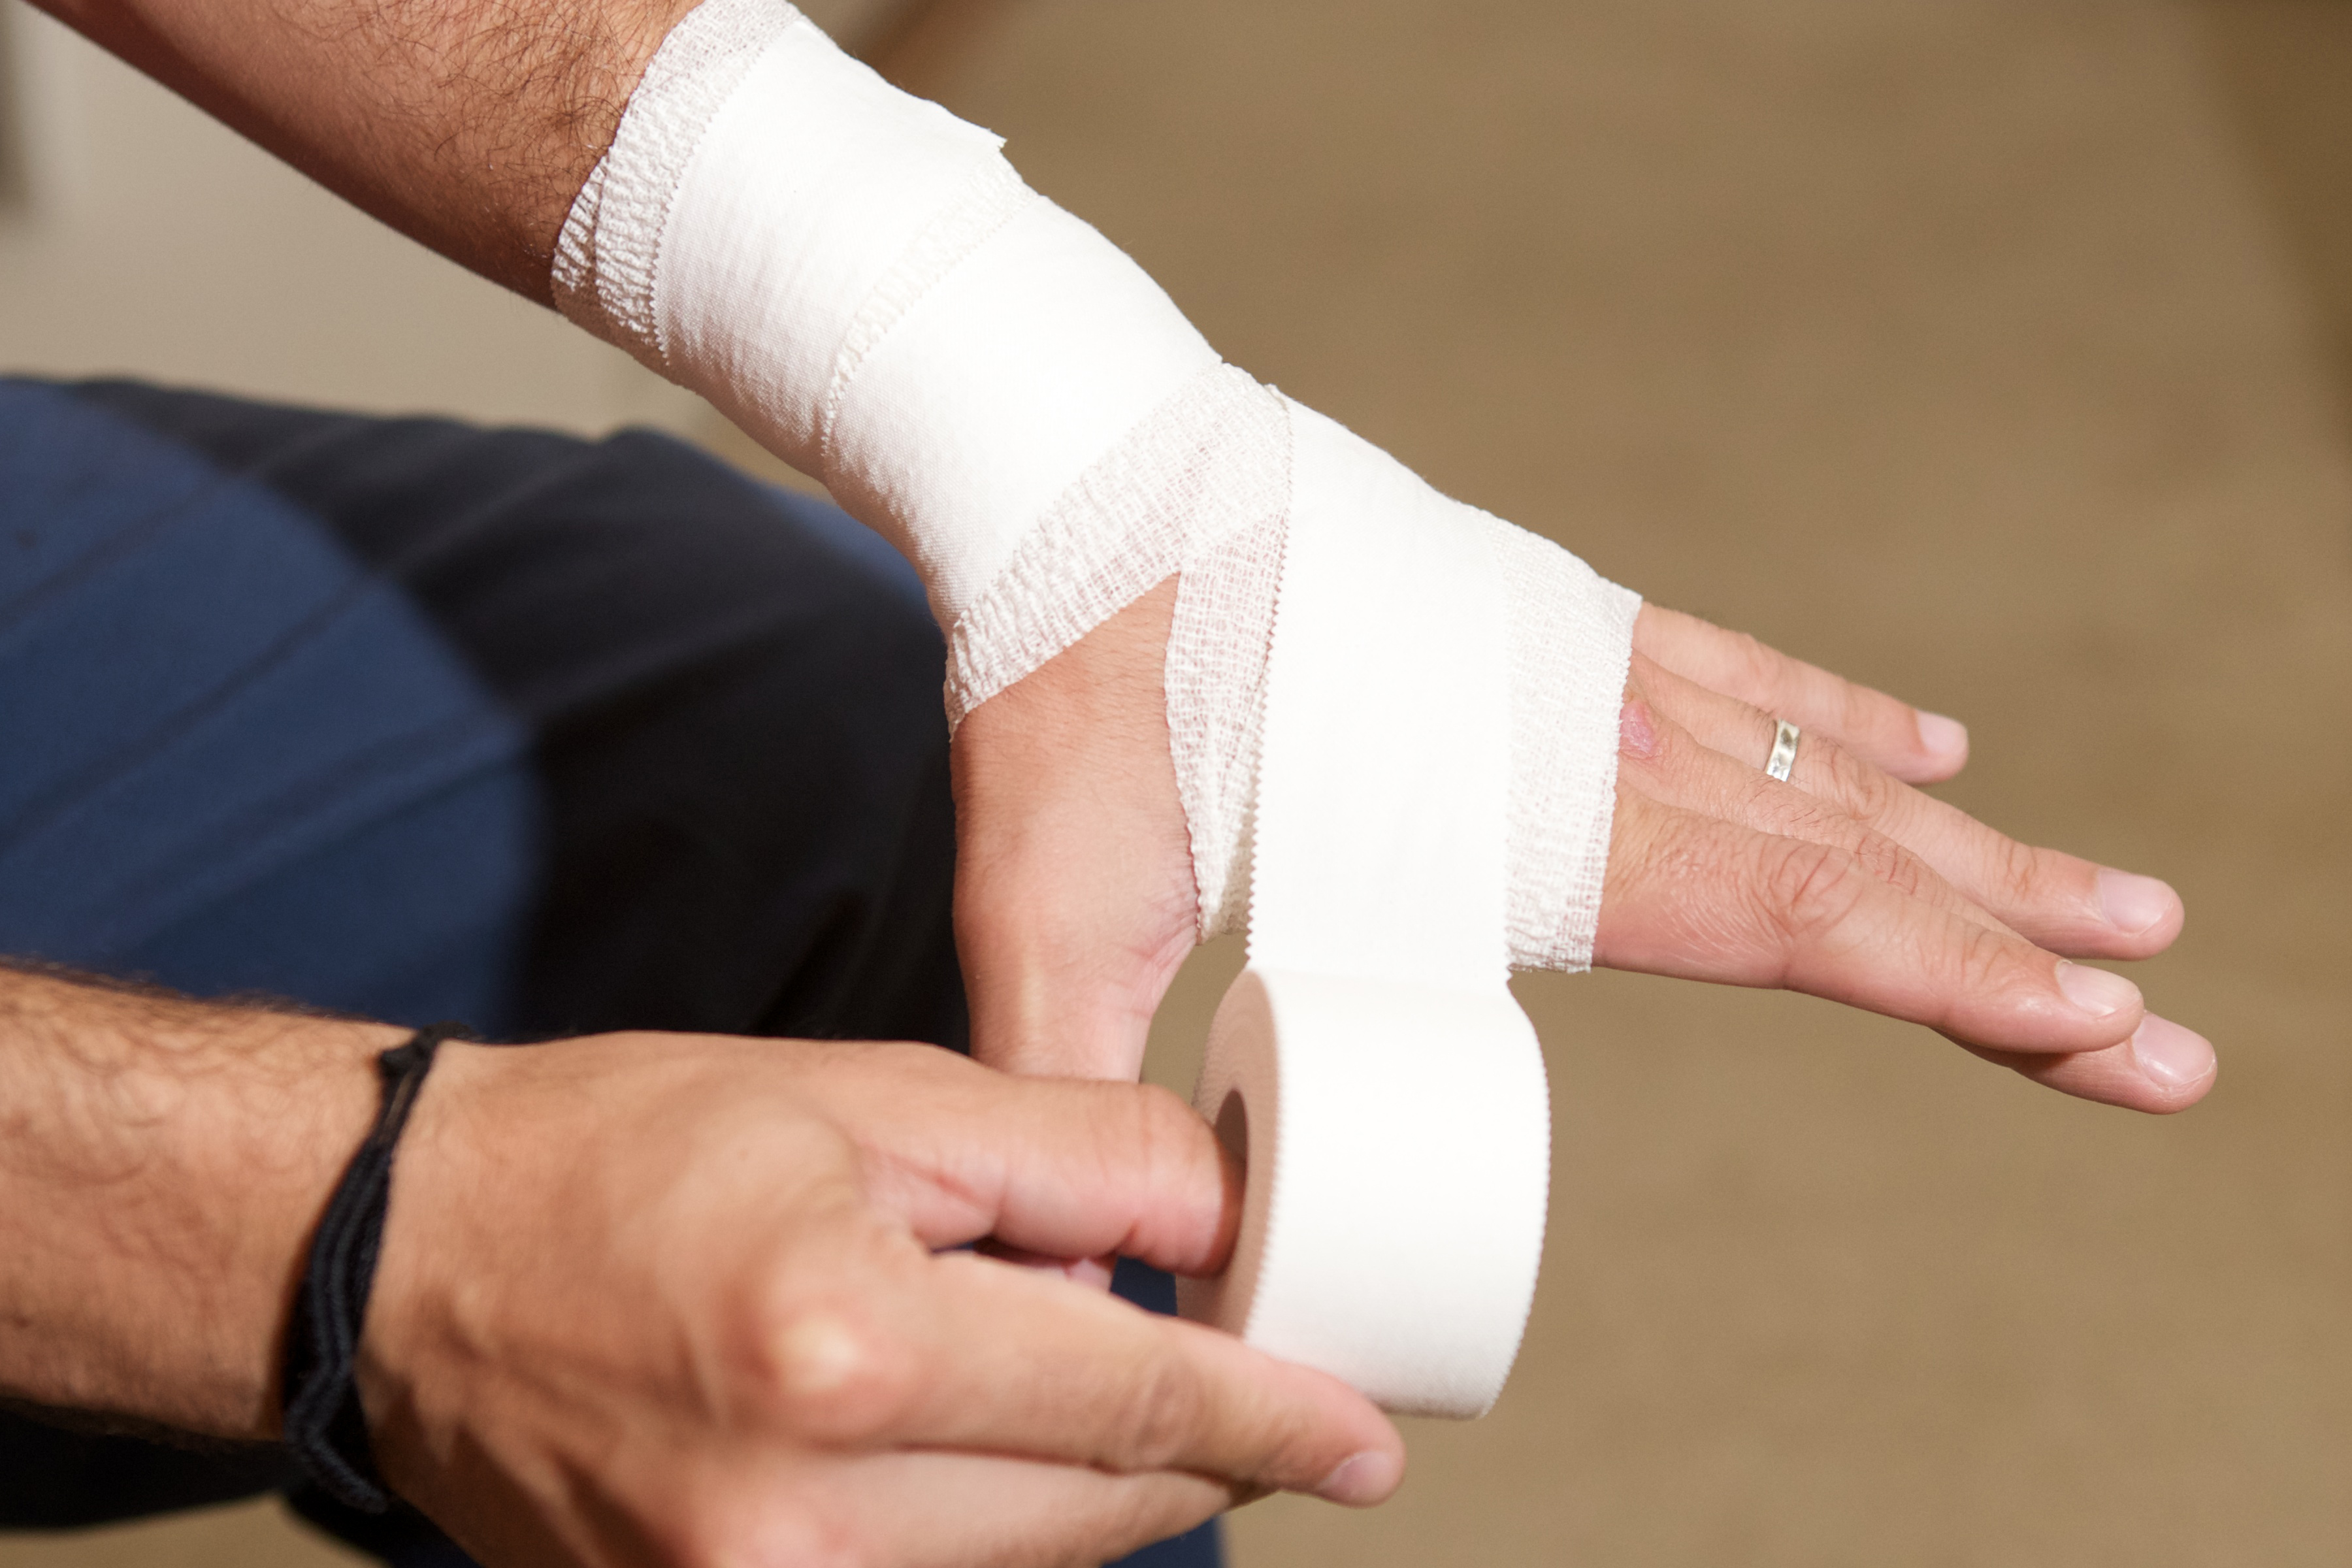 How to Wrap a Wrist With Athletic Tape | LIVESTRONG.COM